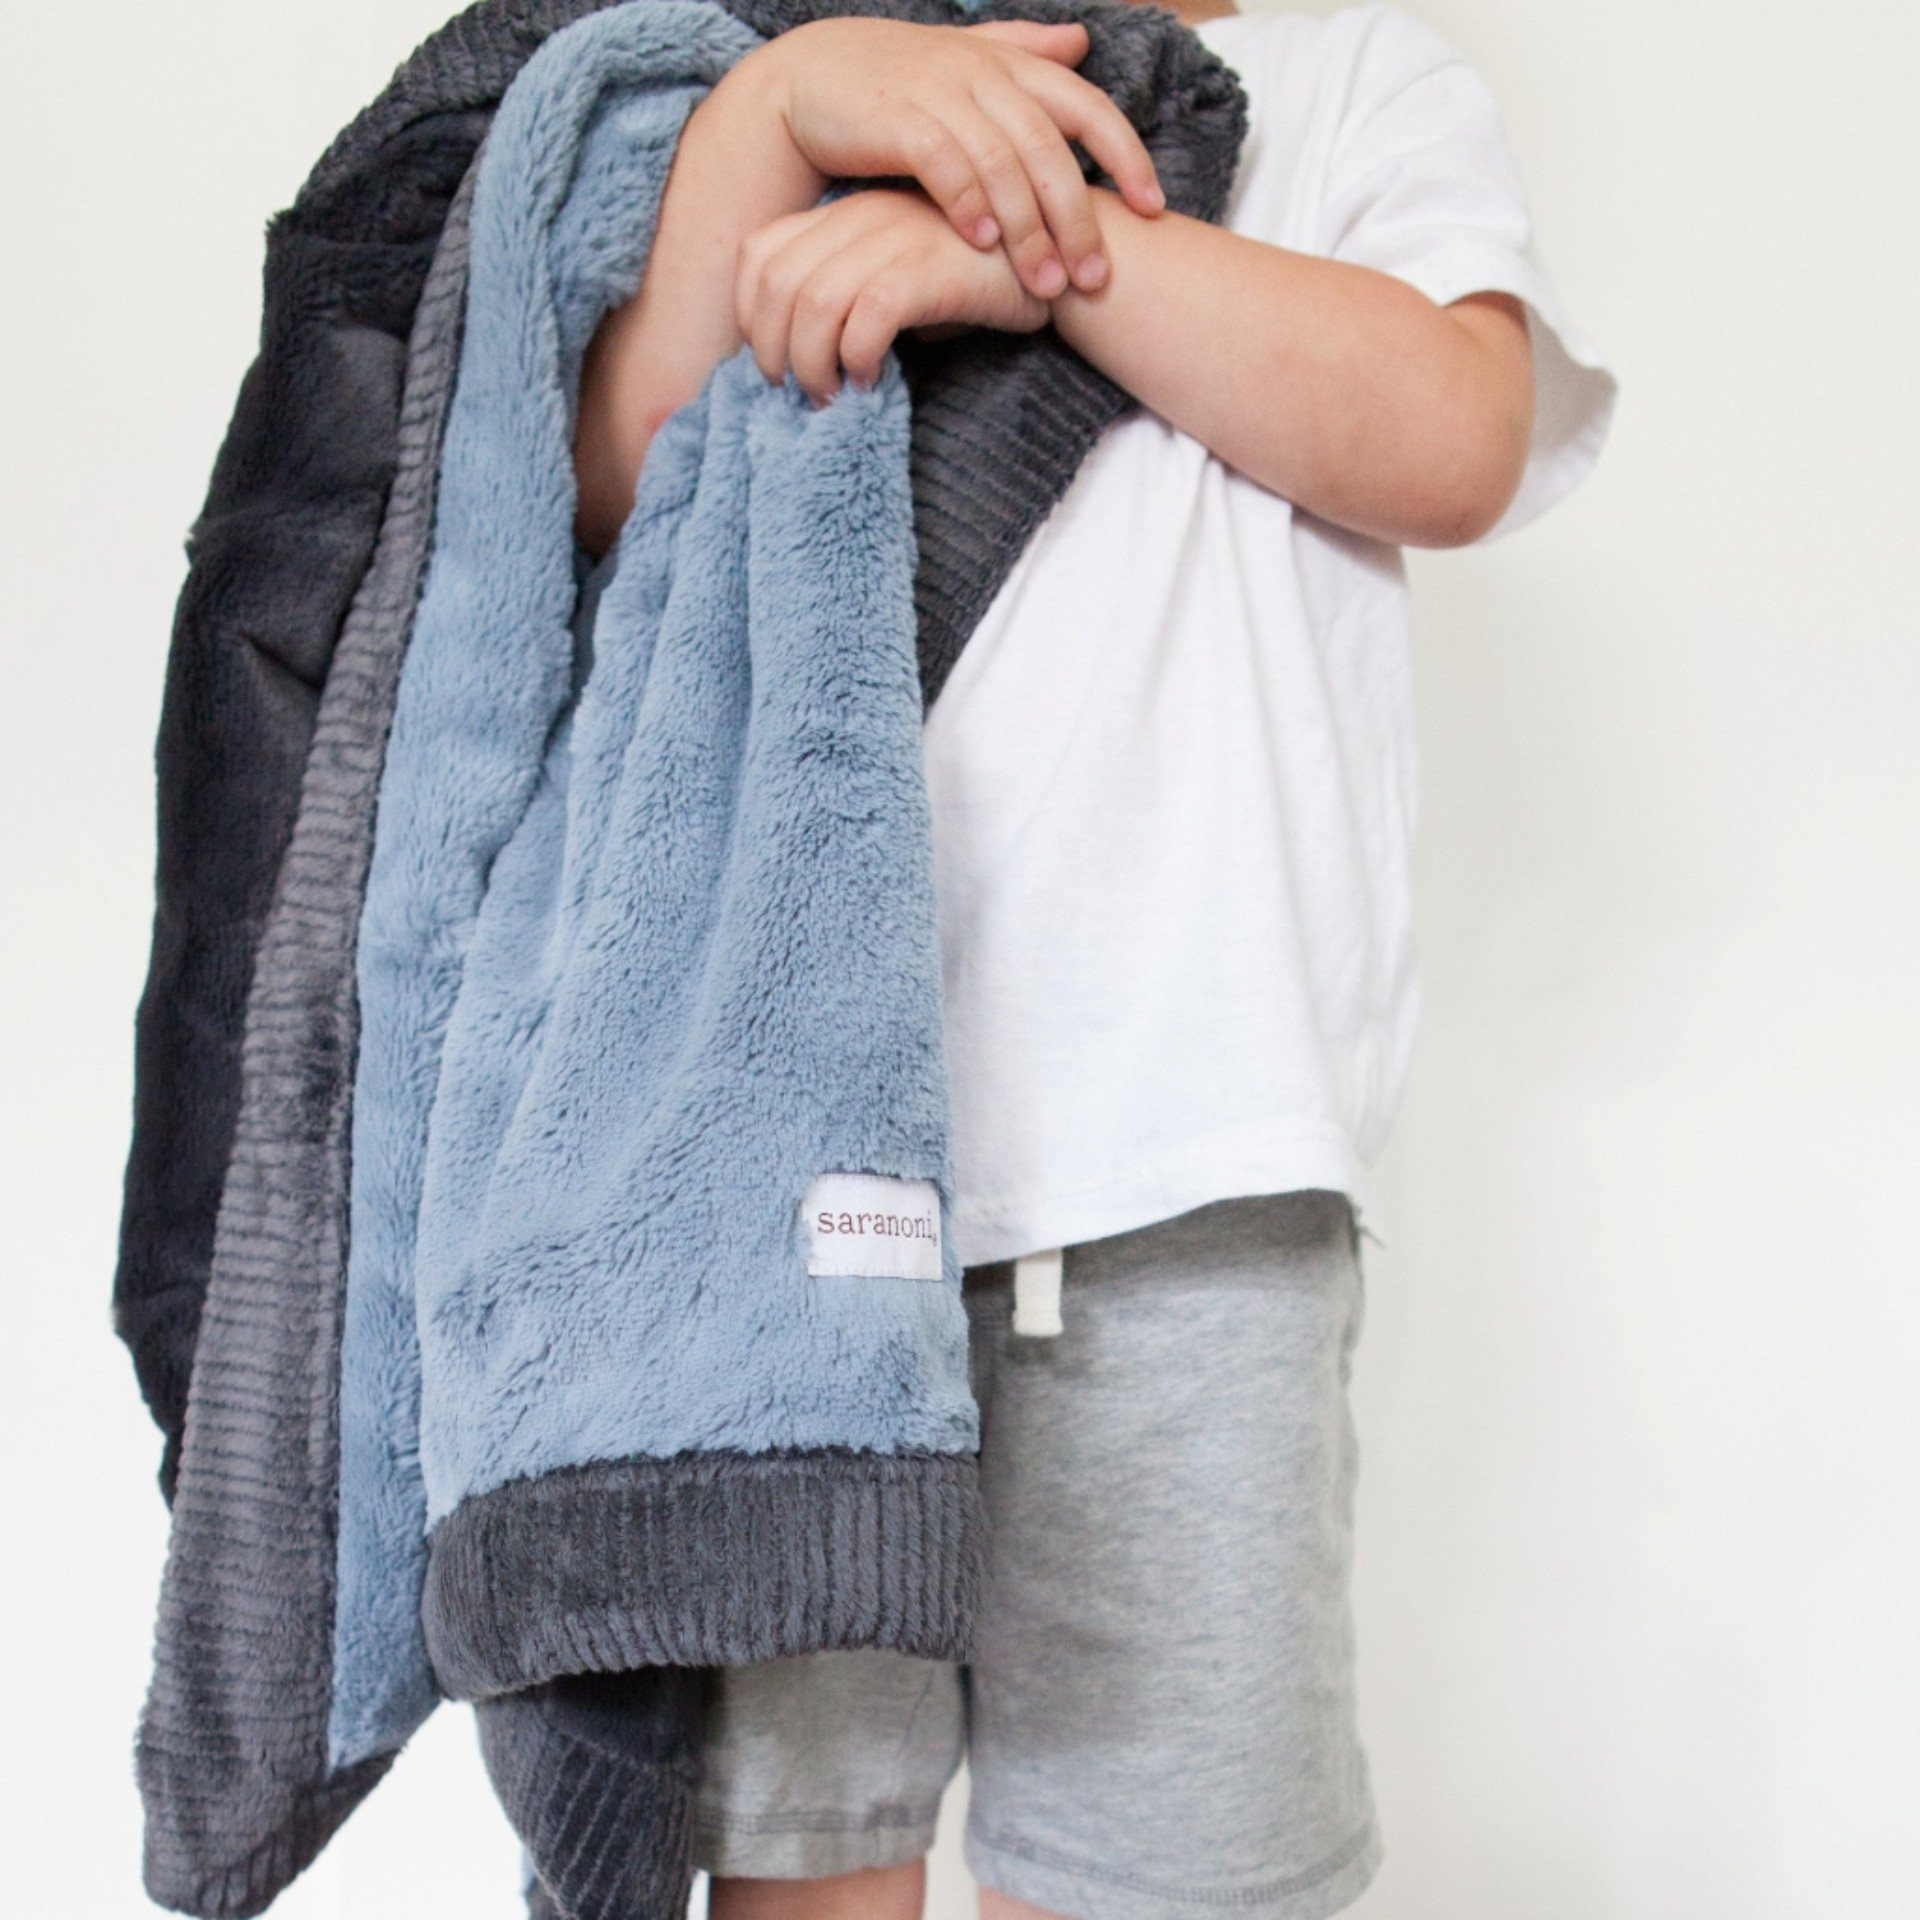 Slate Blue Charcoal Lush Toddler To Teen Blanket Saranoni